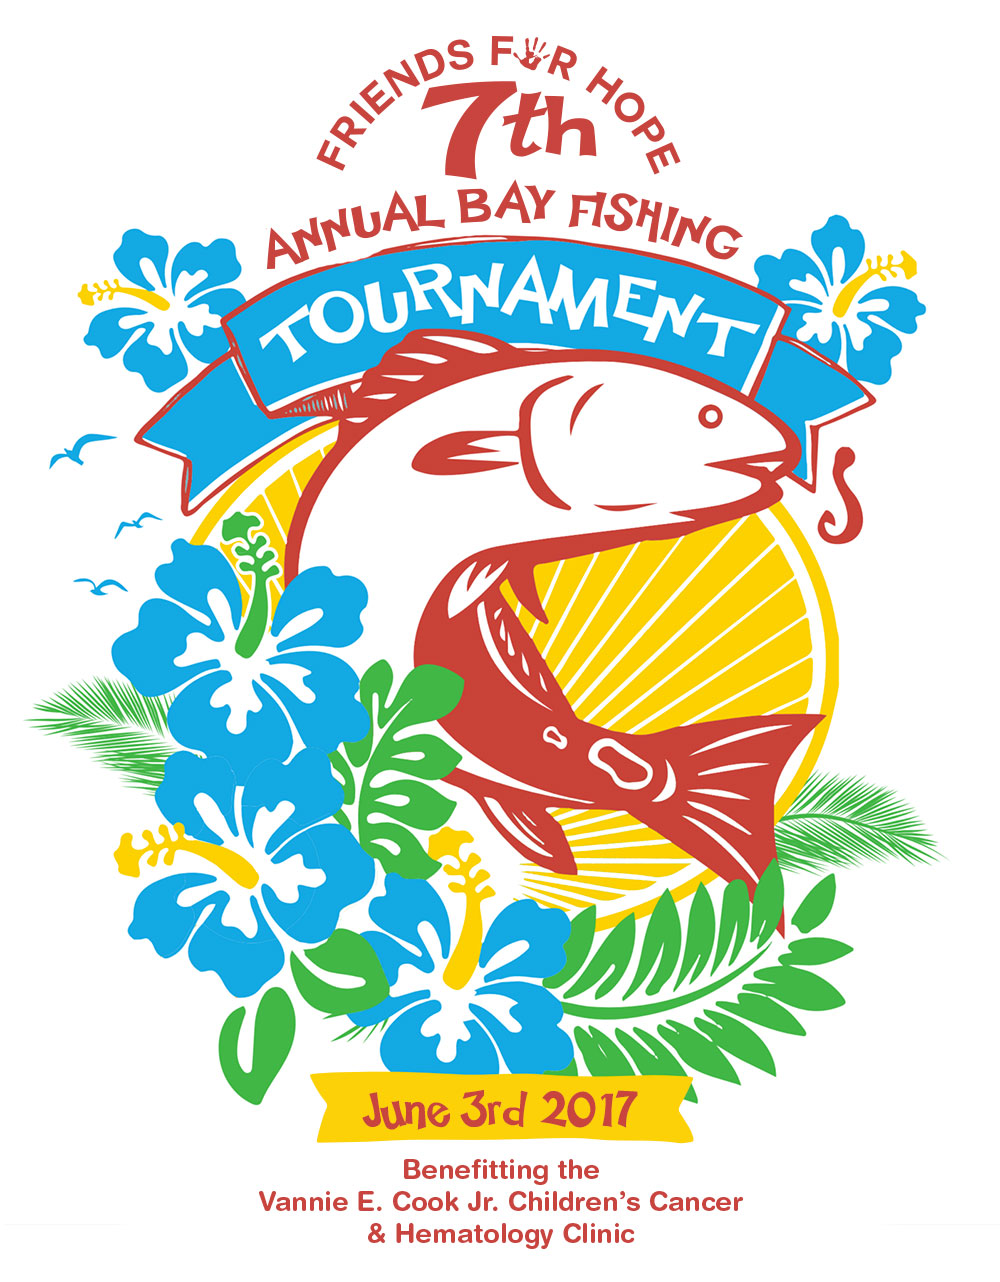 fishing tournamentfriends for hope